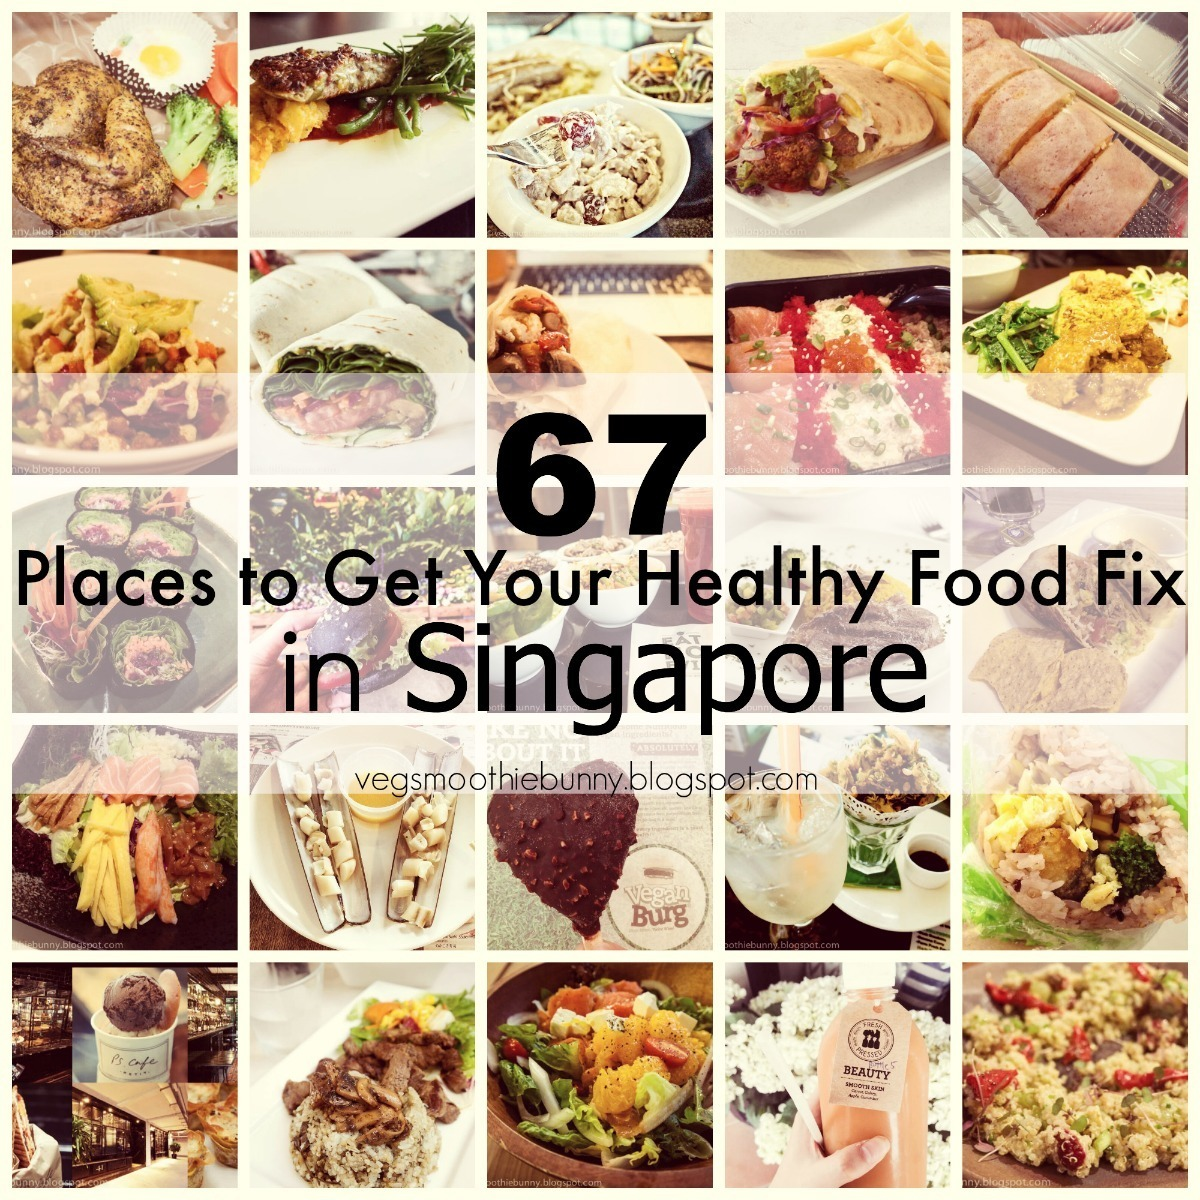 67 Places to Get Your Health Food Fix in Singapore